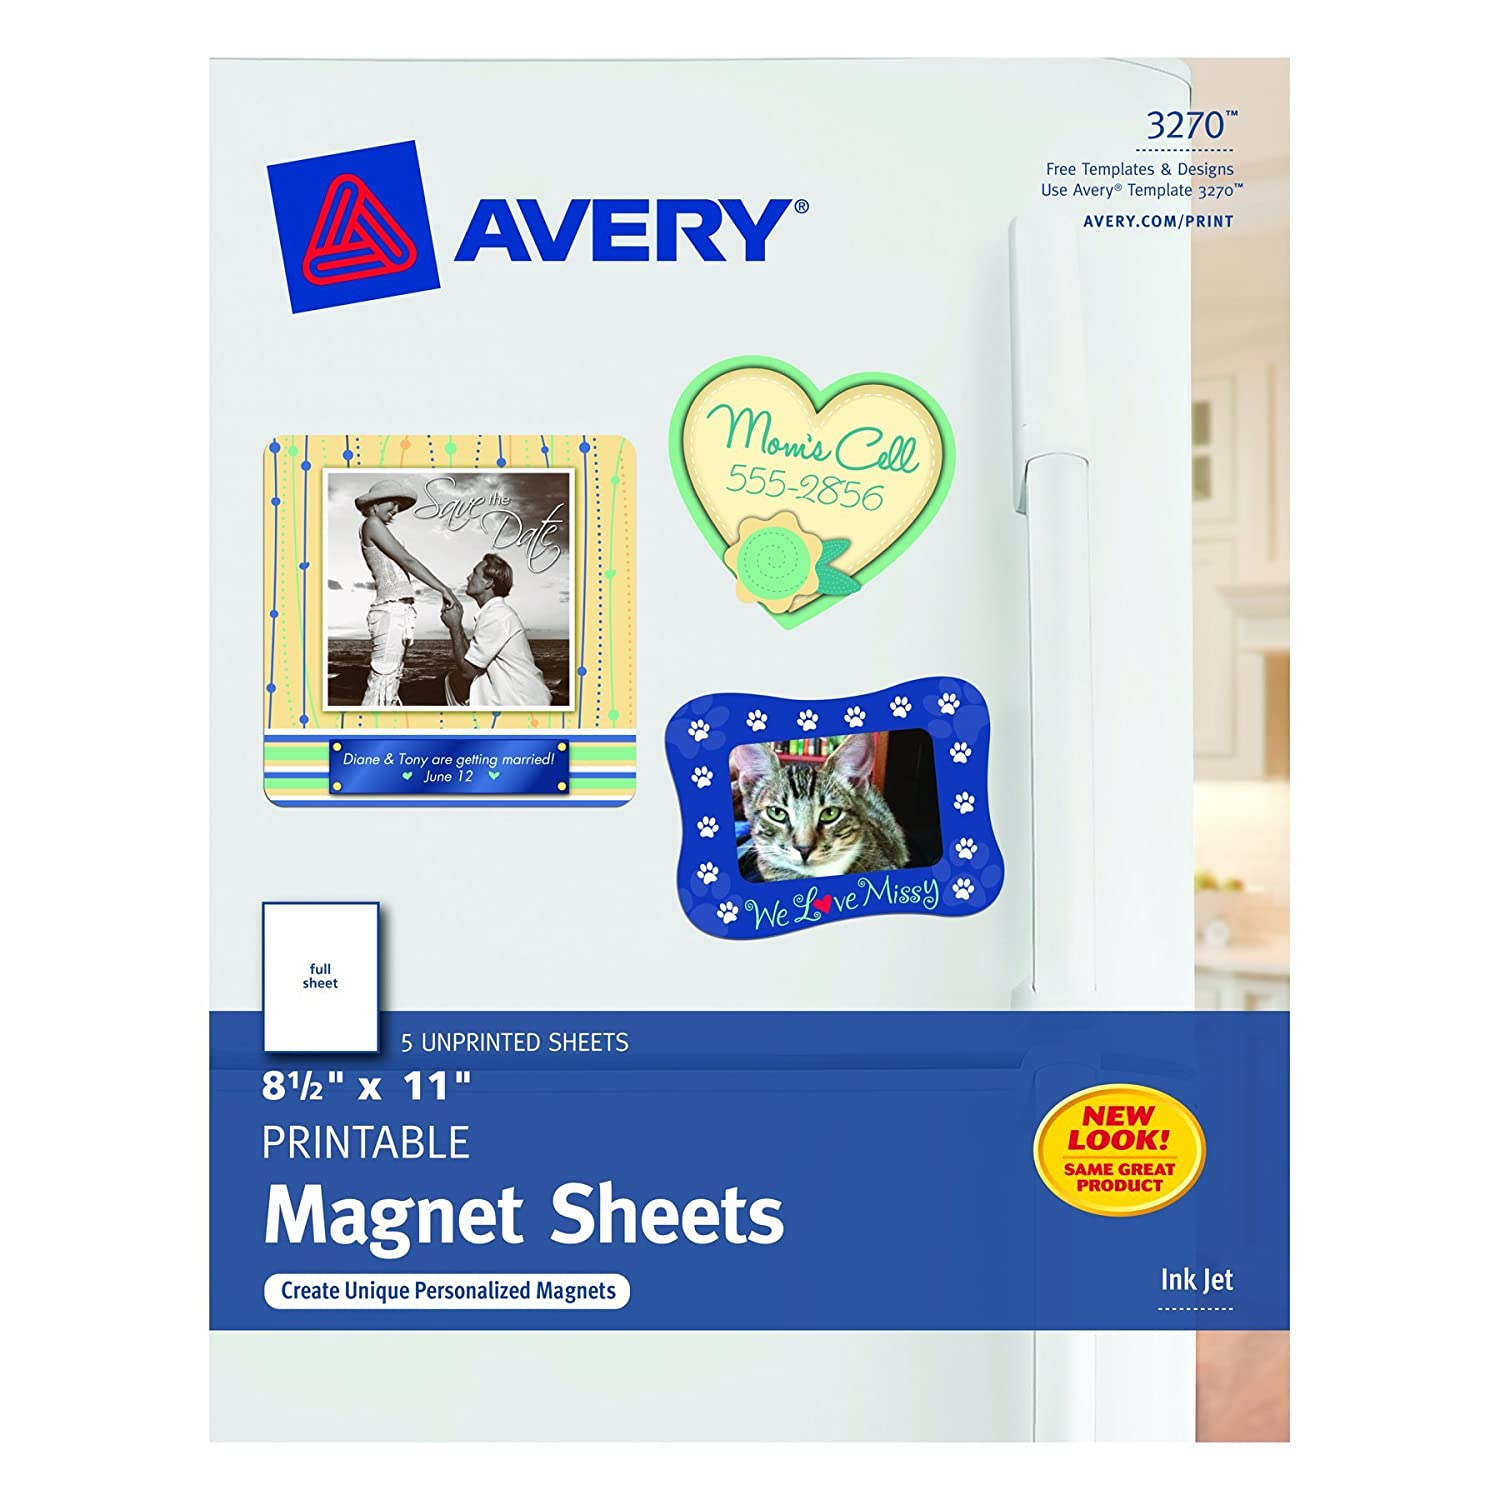 Amazoncom Avery Magnet Sheets X Inches White - Office depot window decals template